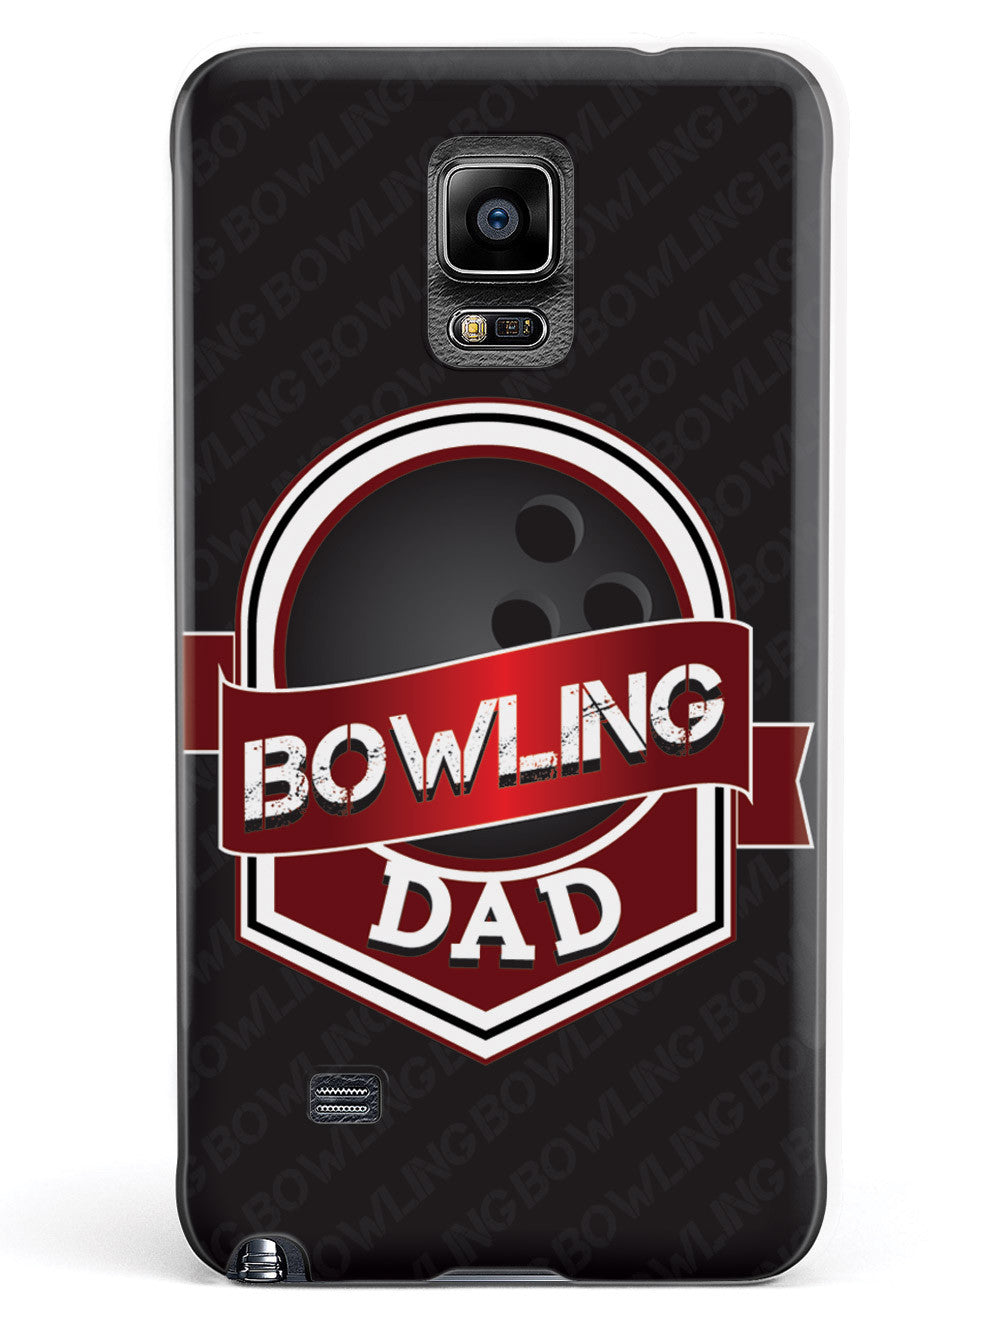 Bowling Dad Case